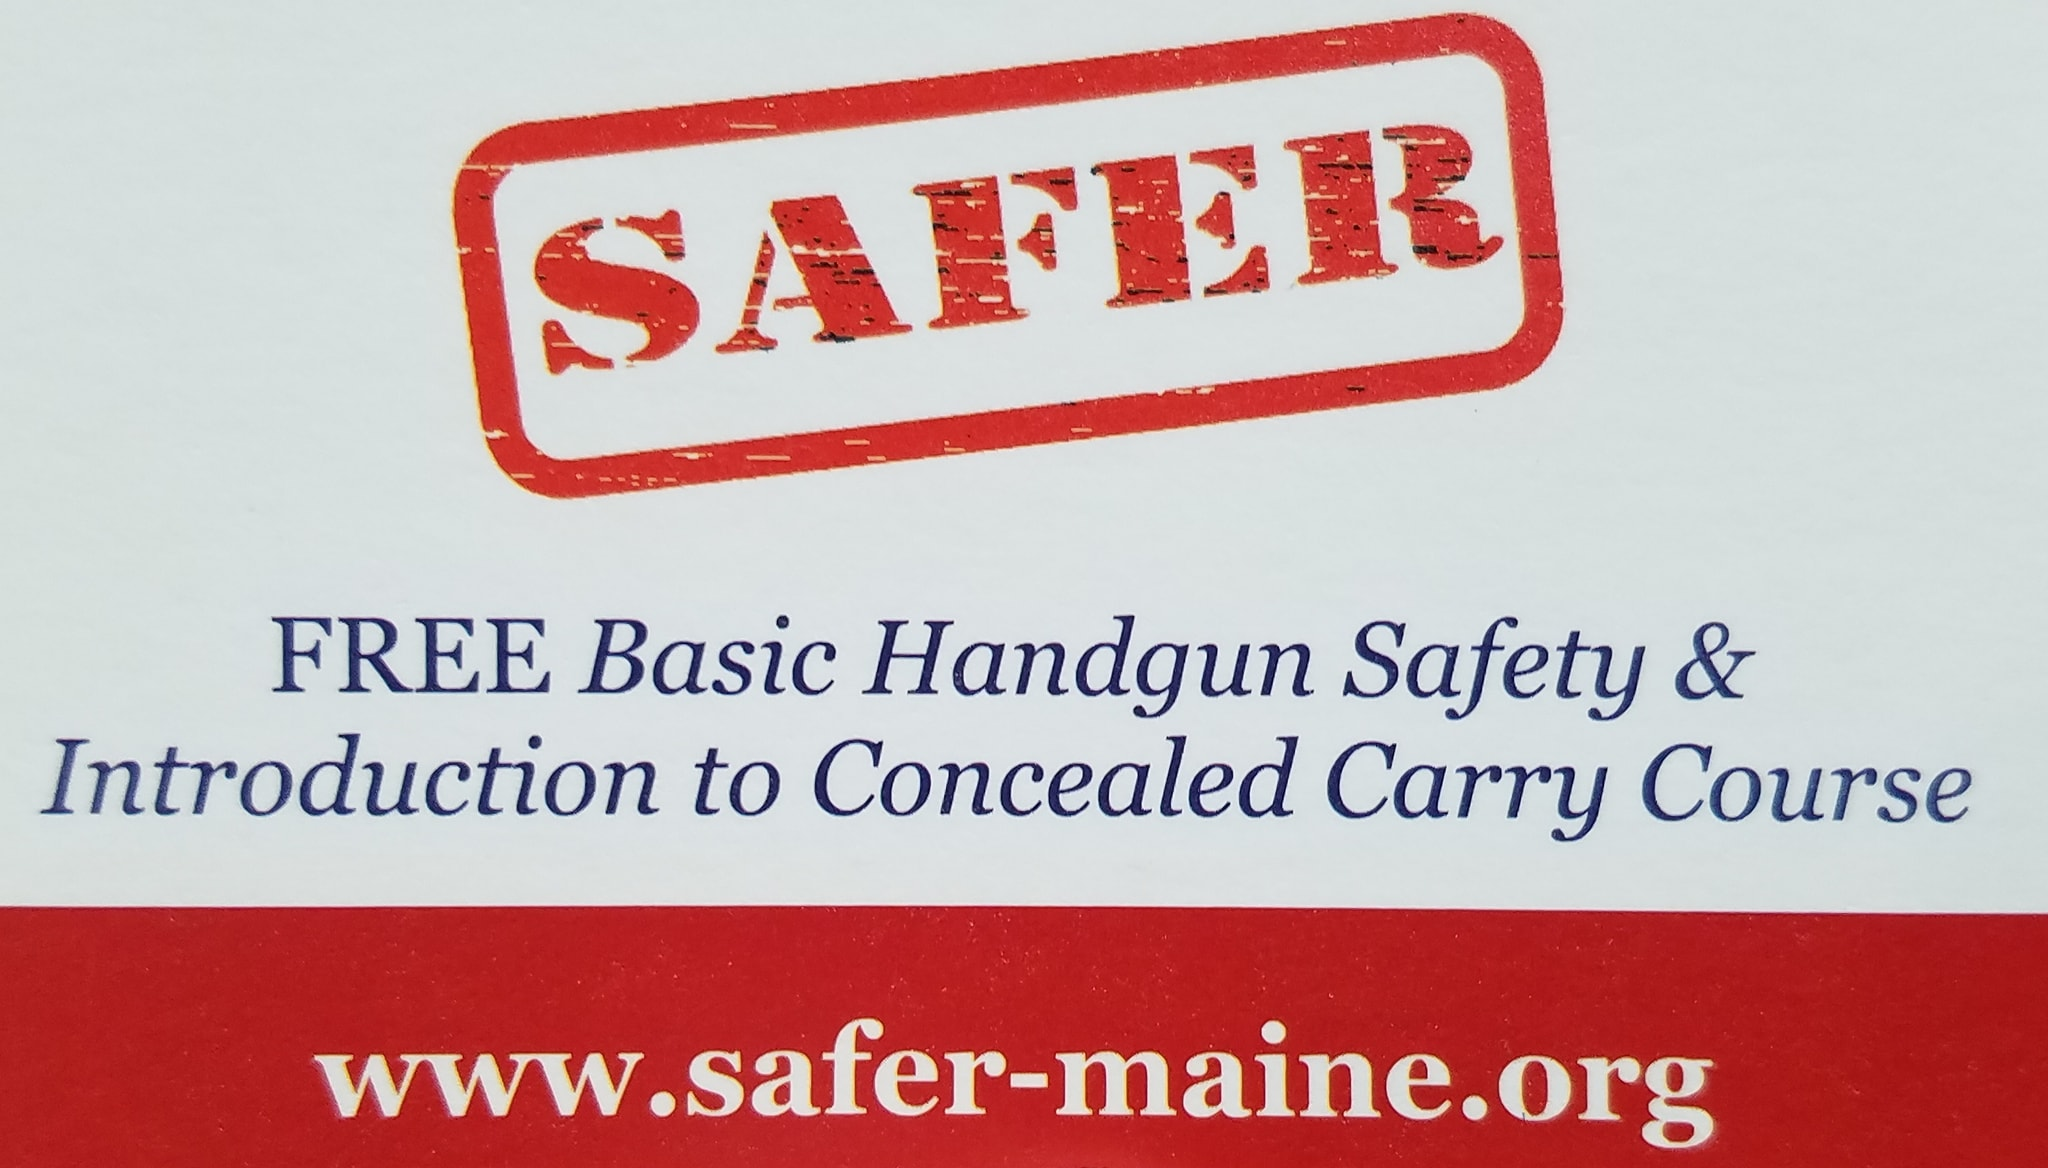 Safer Maine Org Free Basic Handgun Safety Course